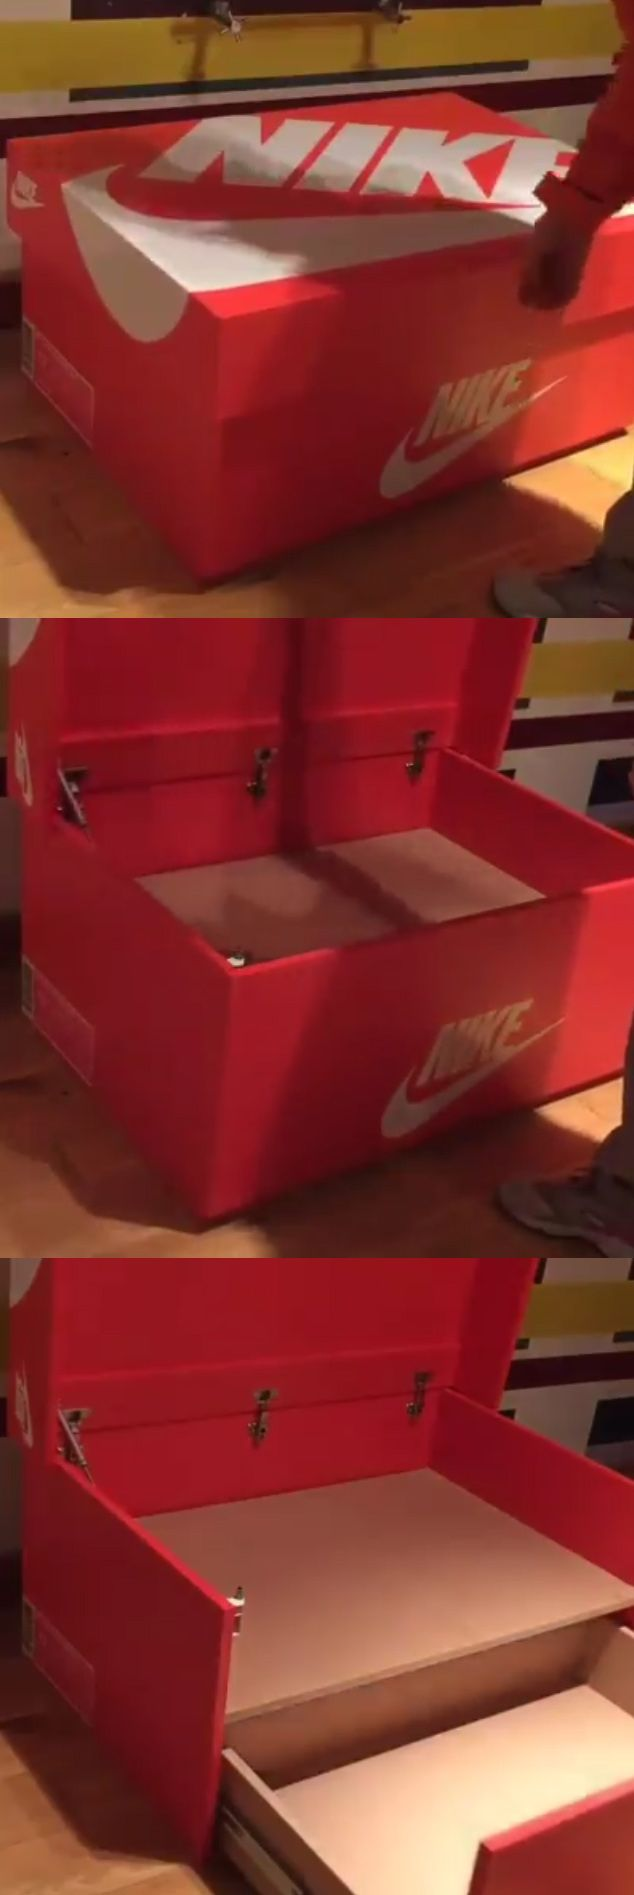 Custom Nike Shoe Box Storage Unit / Foot Locker!